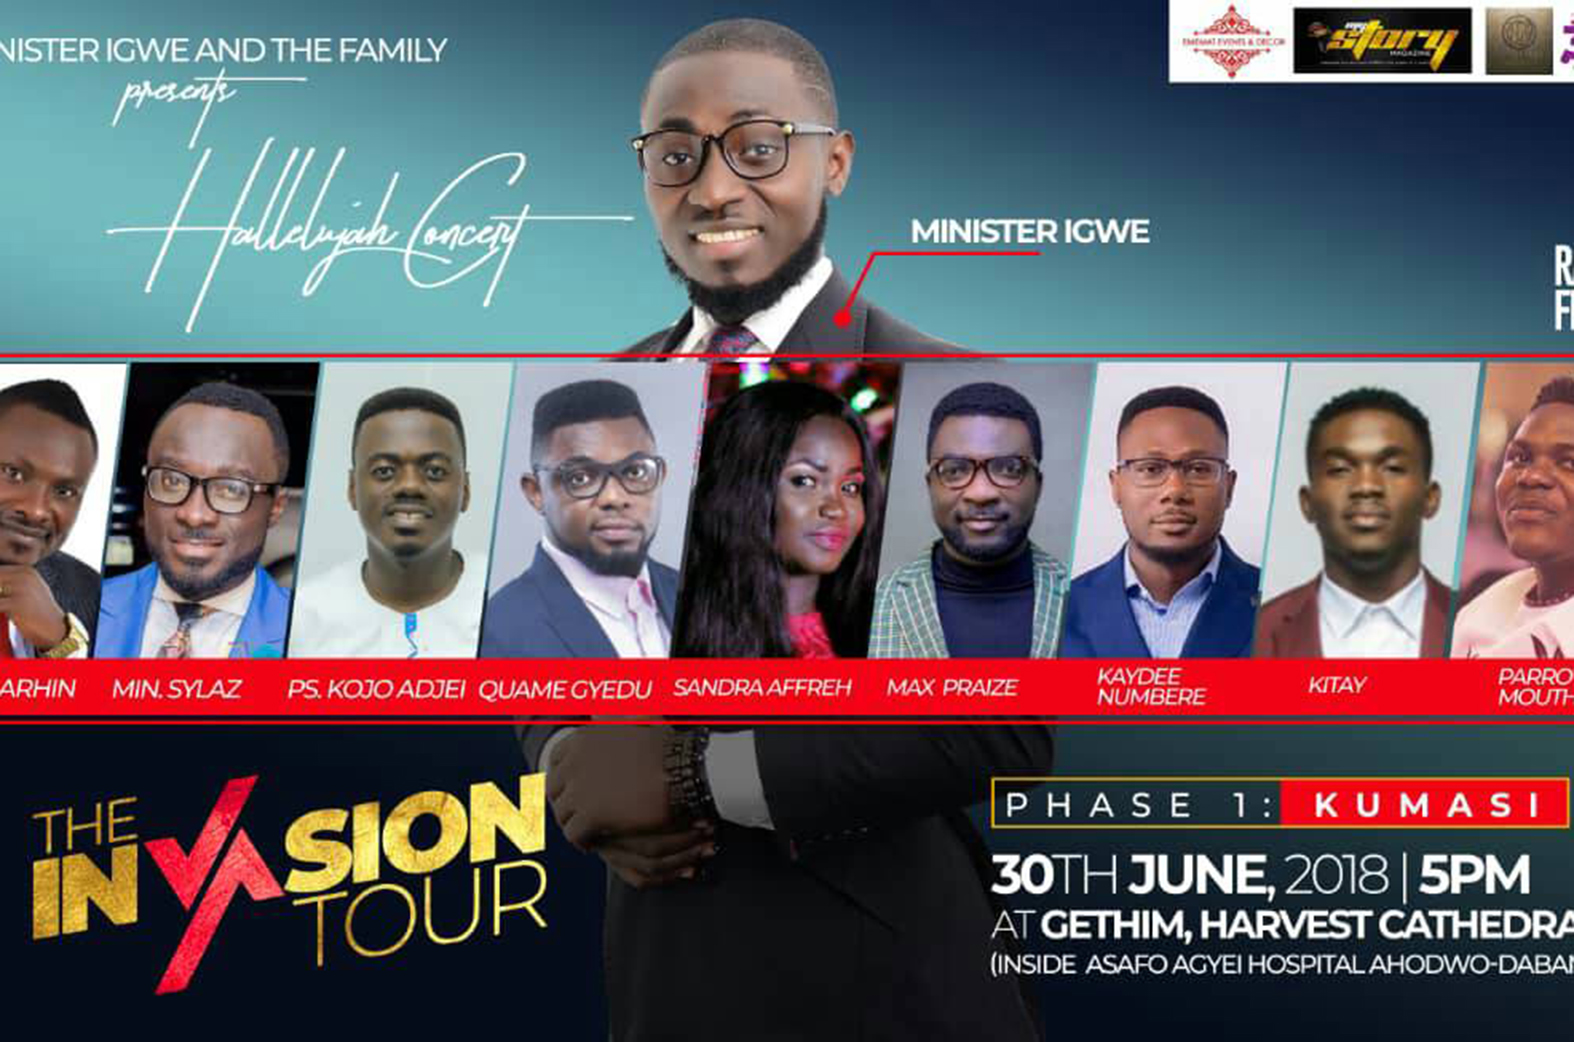 The Hallelujah Concert with Minister Igwe